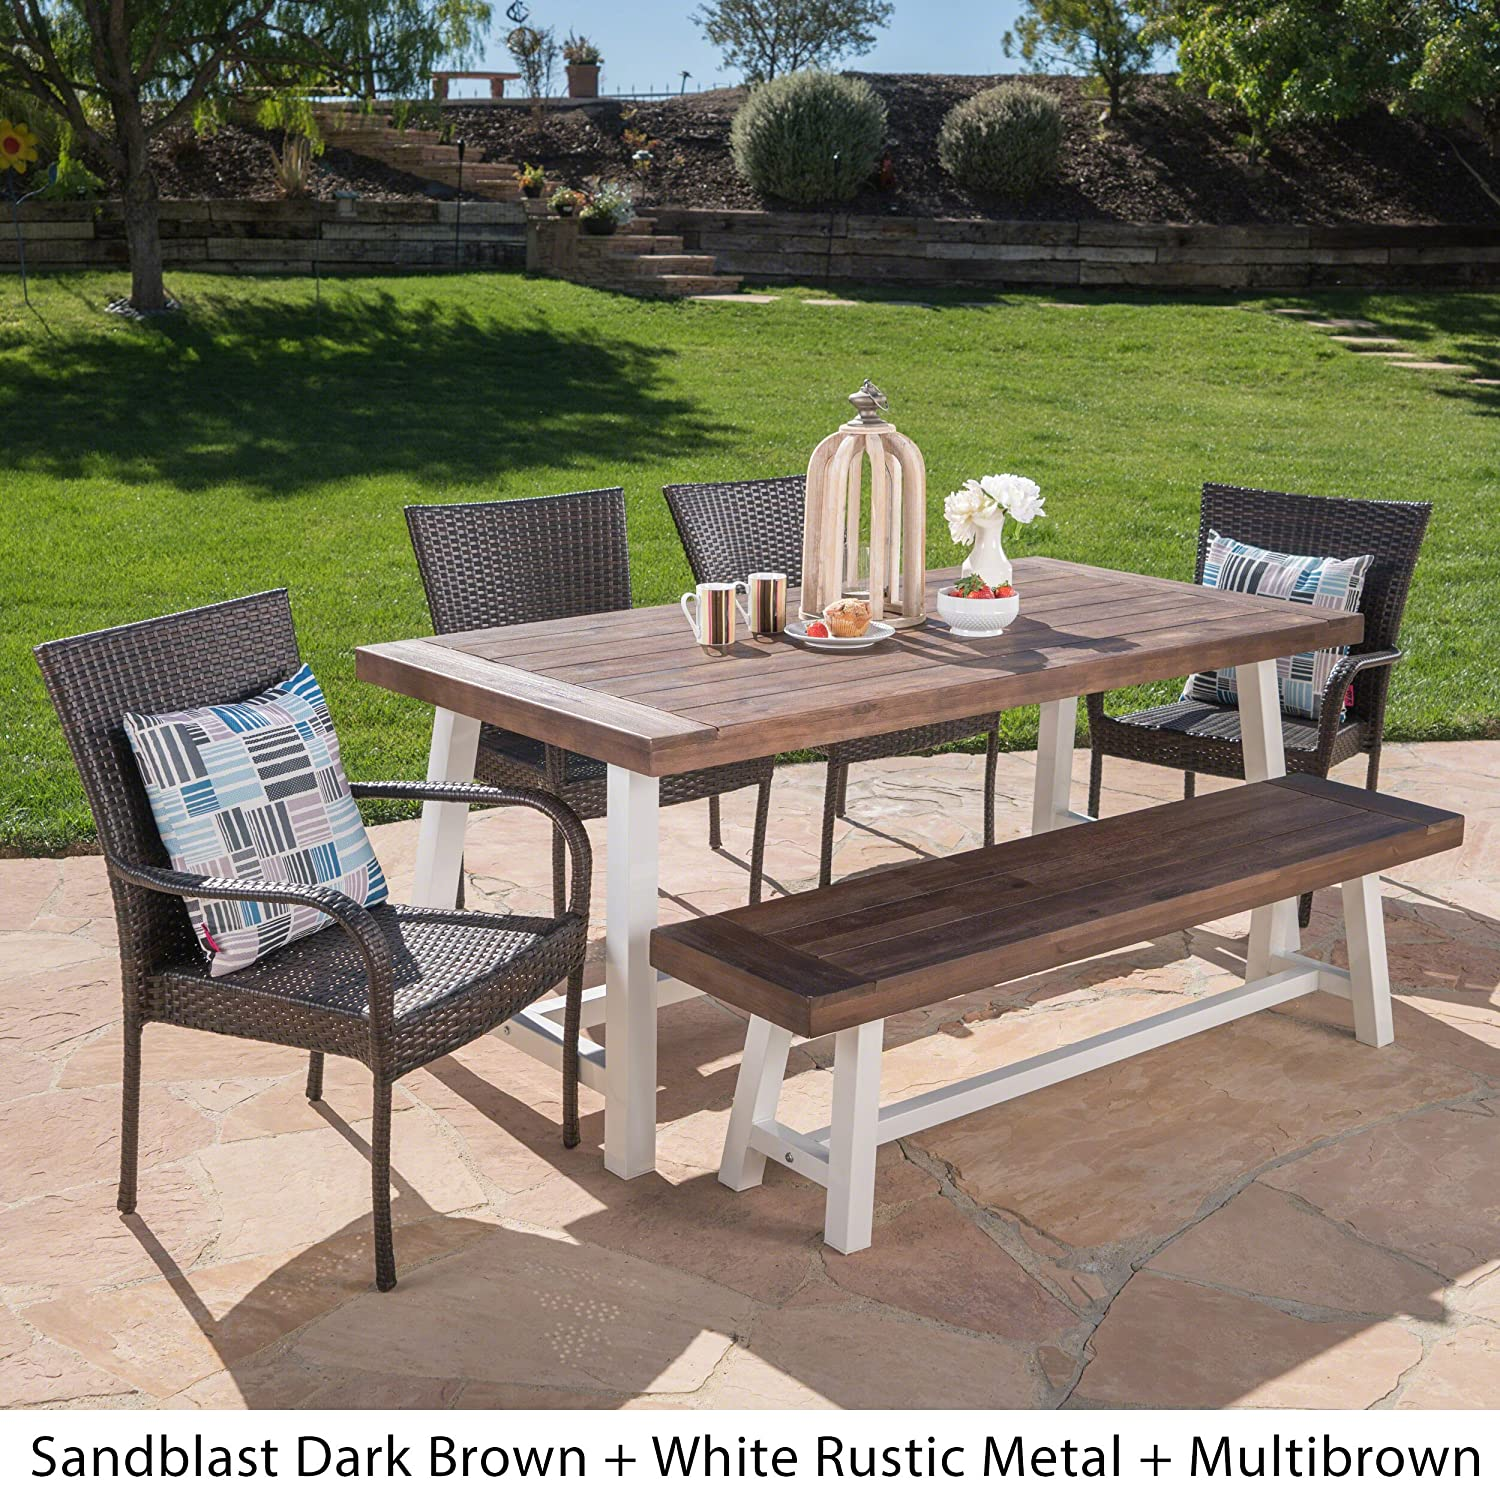 Miraculous Christopher Knight Home Cecilia Outdoor 6 Piece Stacking Multibrown Wicker Dining Set With Dark Brown Sandblast Finish Acacia Wood Table And Bench Creativecarmelina Interior Chair Design Creativecarmelinacom